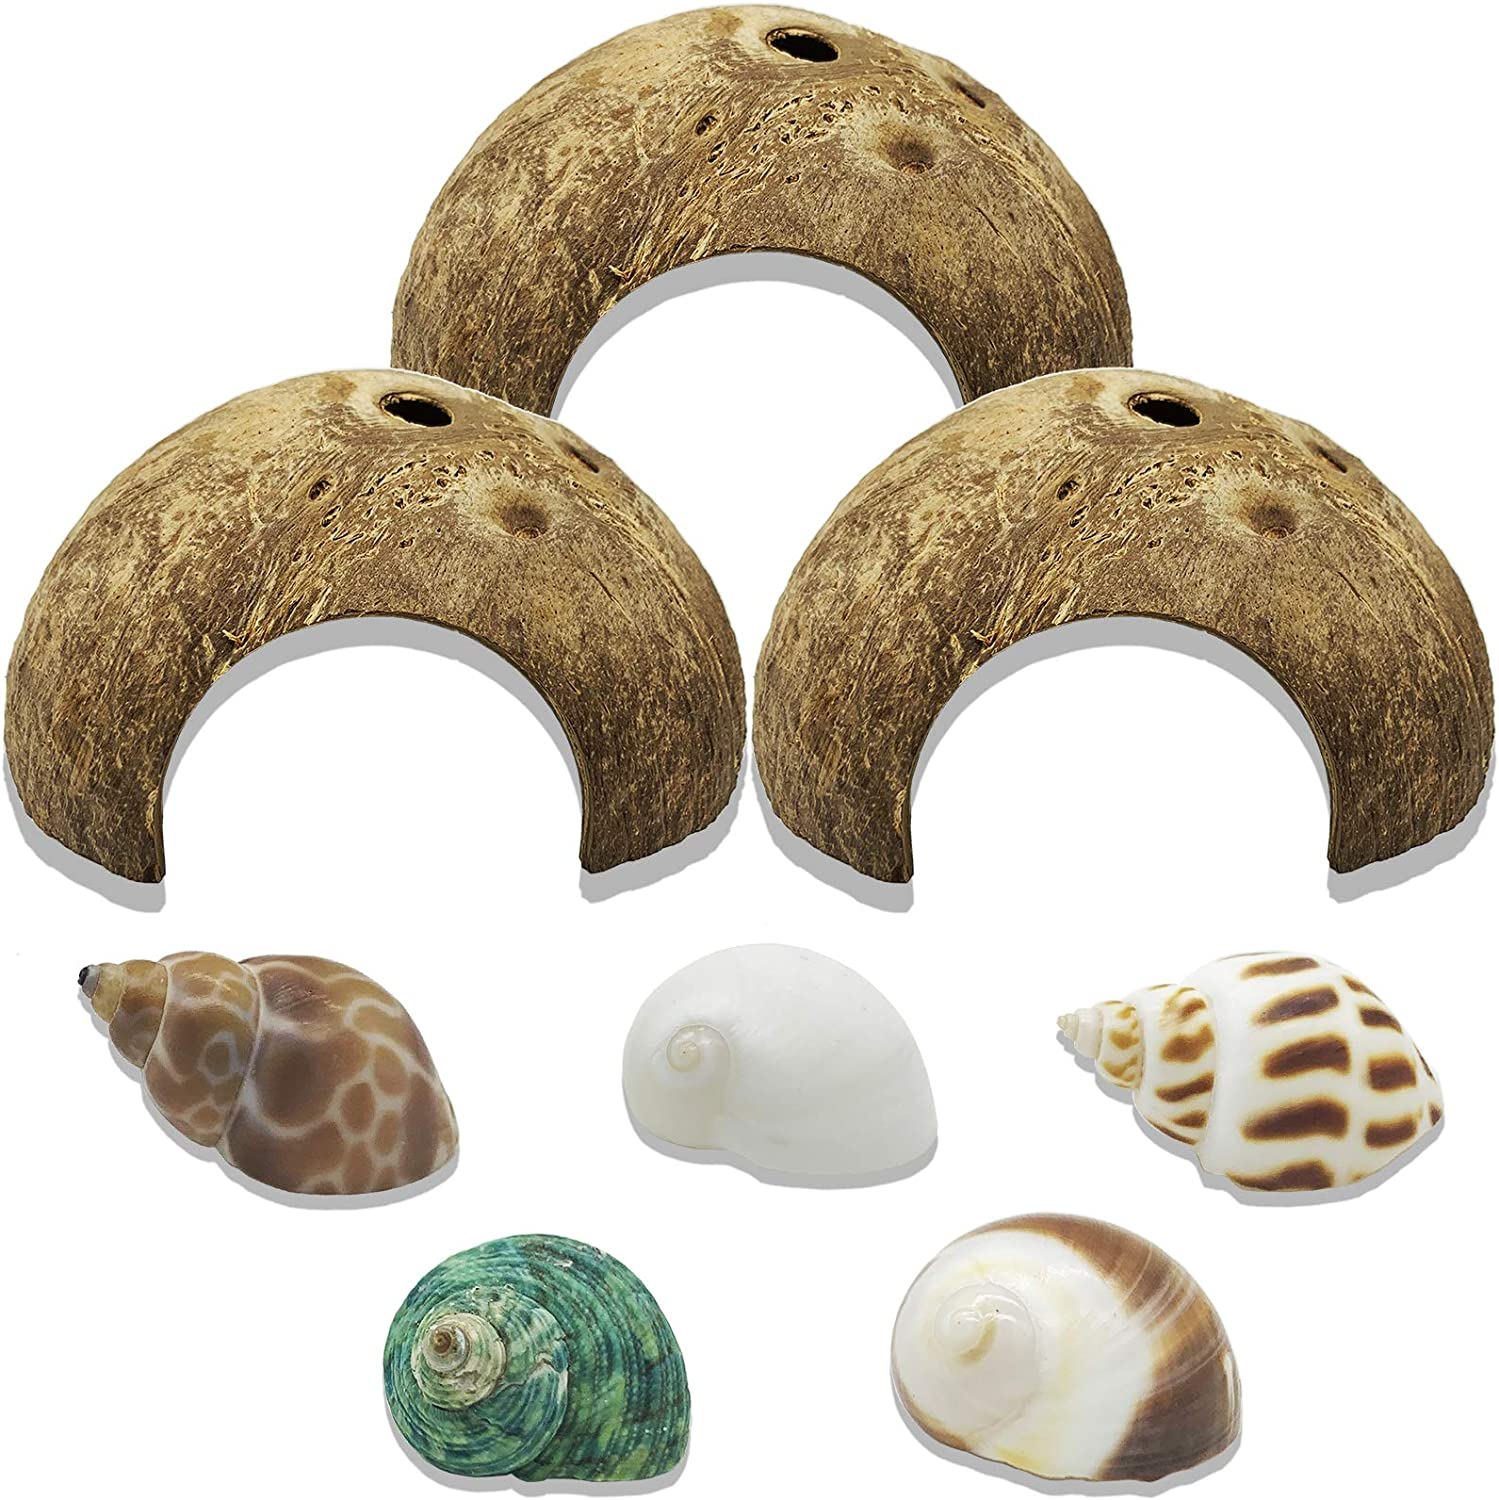 Alpurple 8 PCS Natural Coconut Reptile Hideouts- Natural Turbo Sea Shells Turbo Shells Hermit Crab with Coconut Hide Reptile Hideouts for Beach Home Decor and Wedding Centerpieces